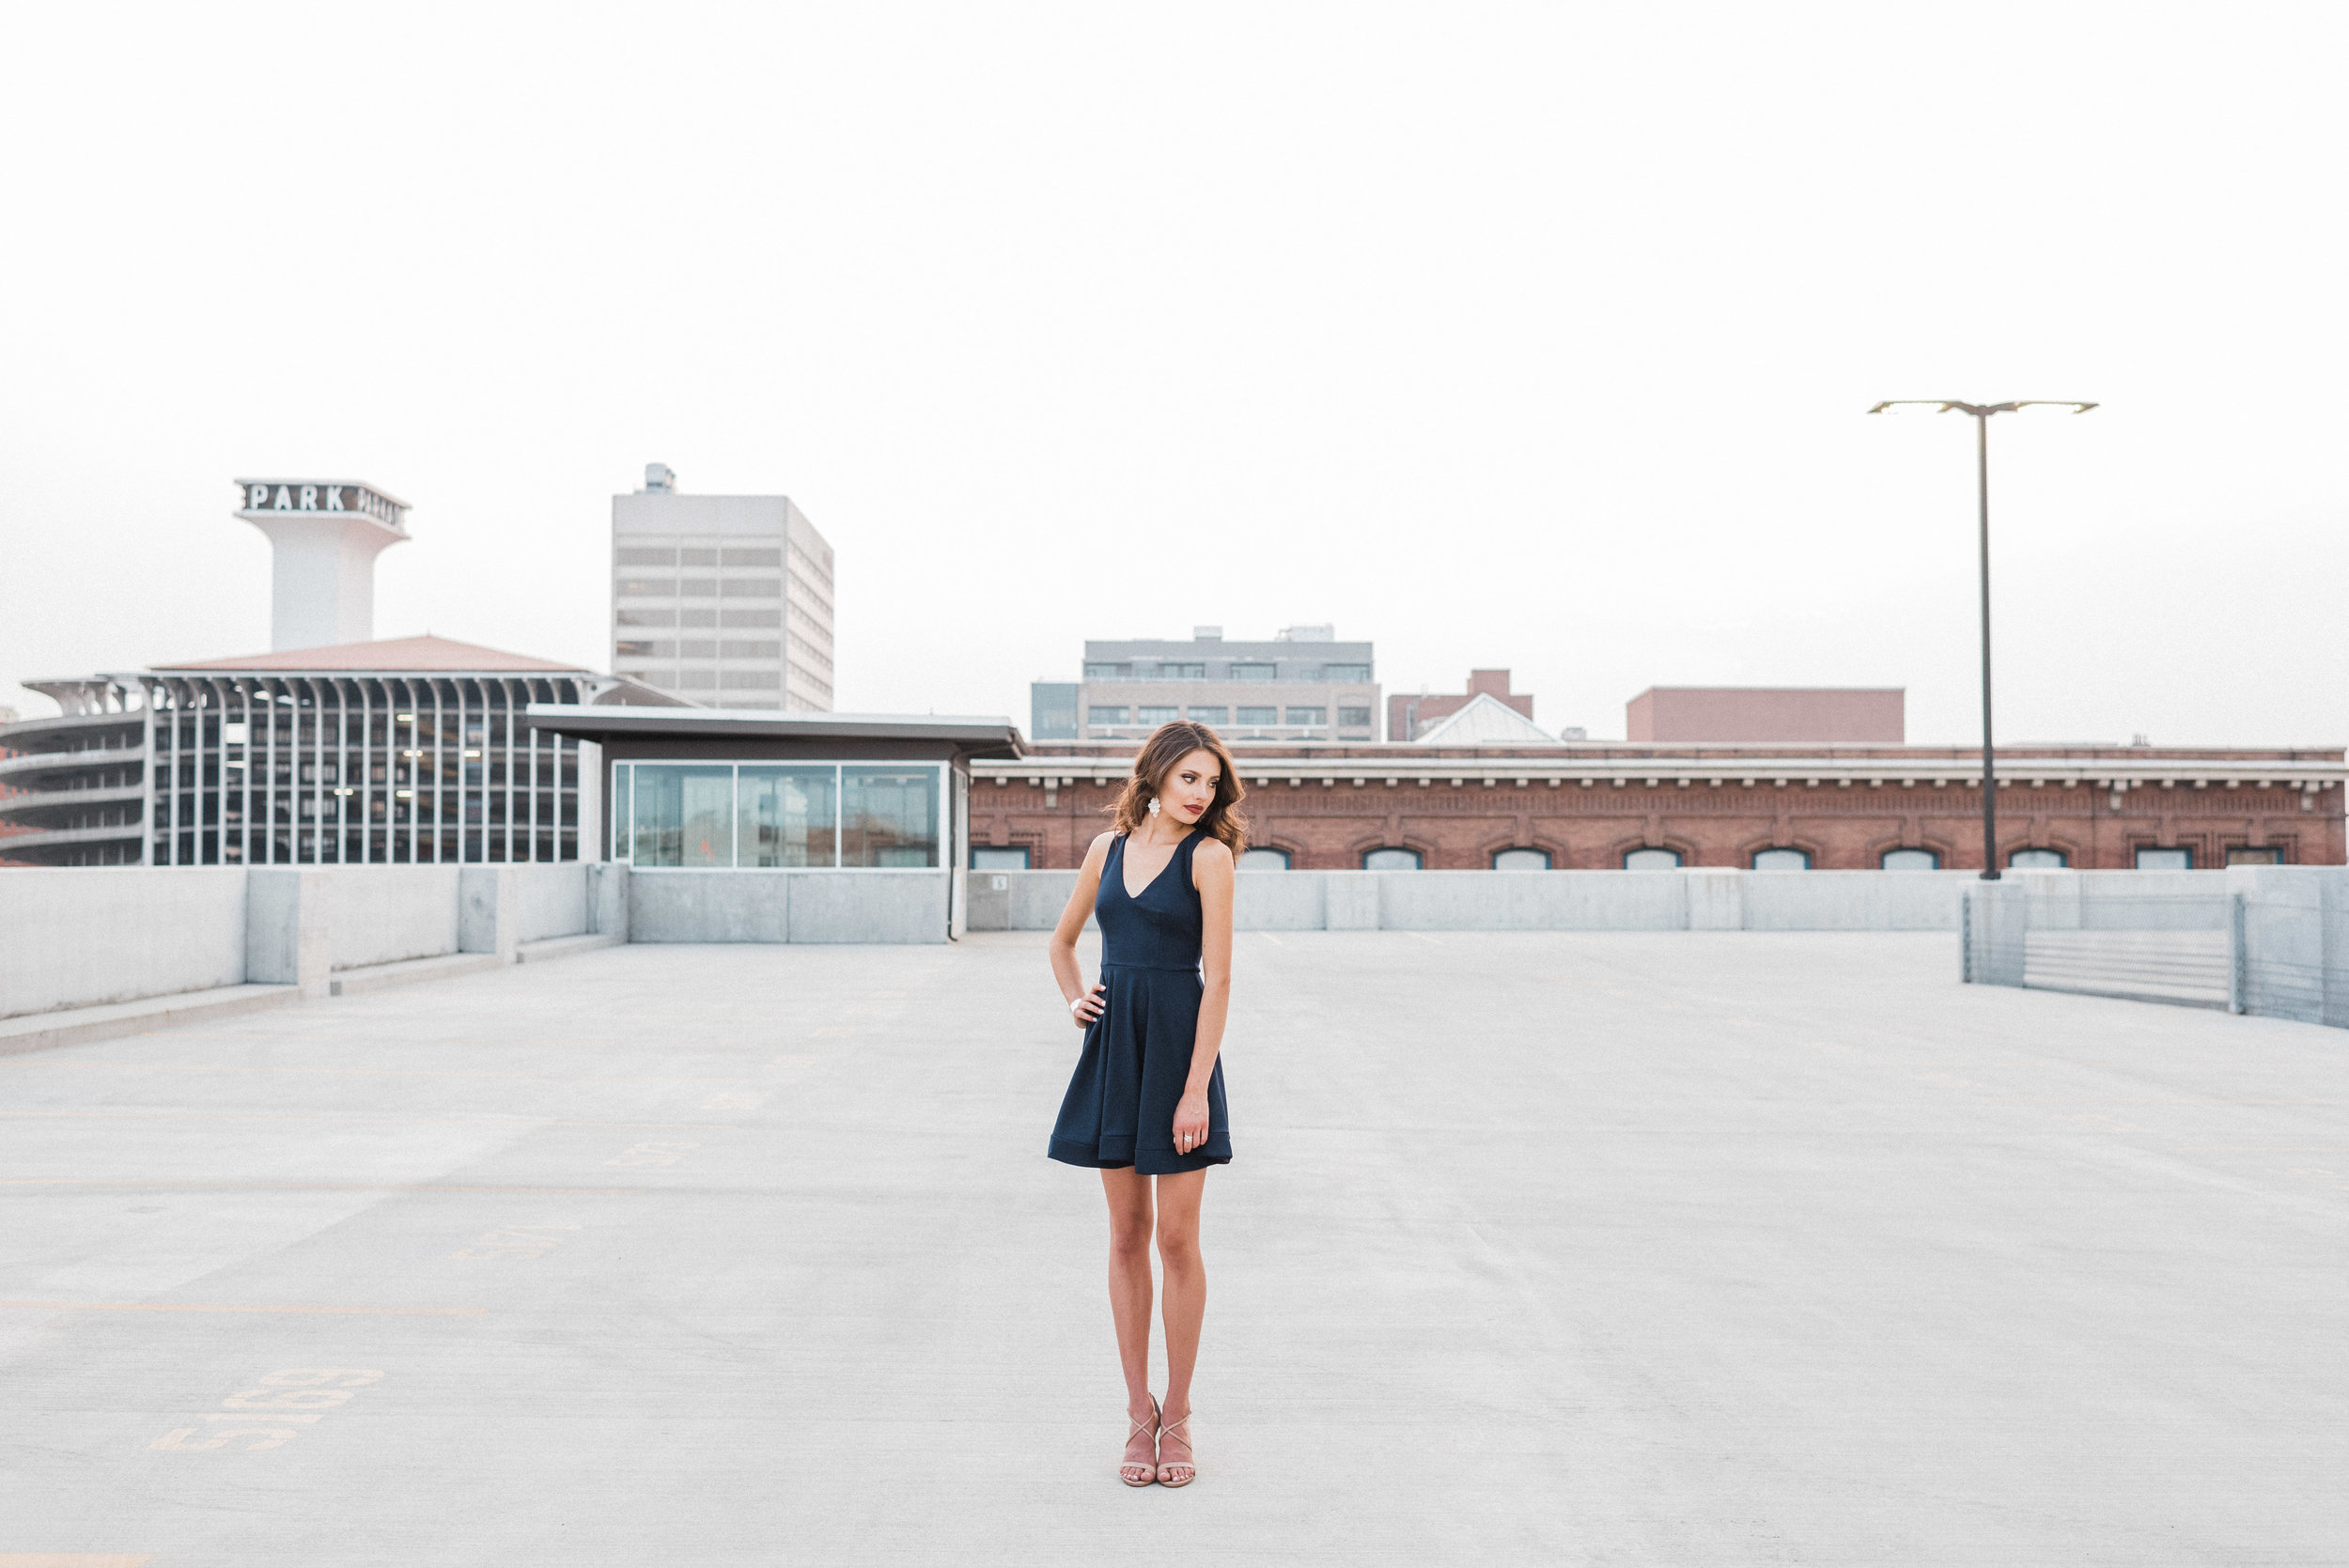 spoakne_urban_senior-session (41 of 41).jpg